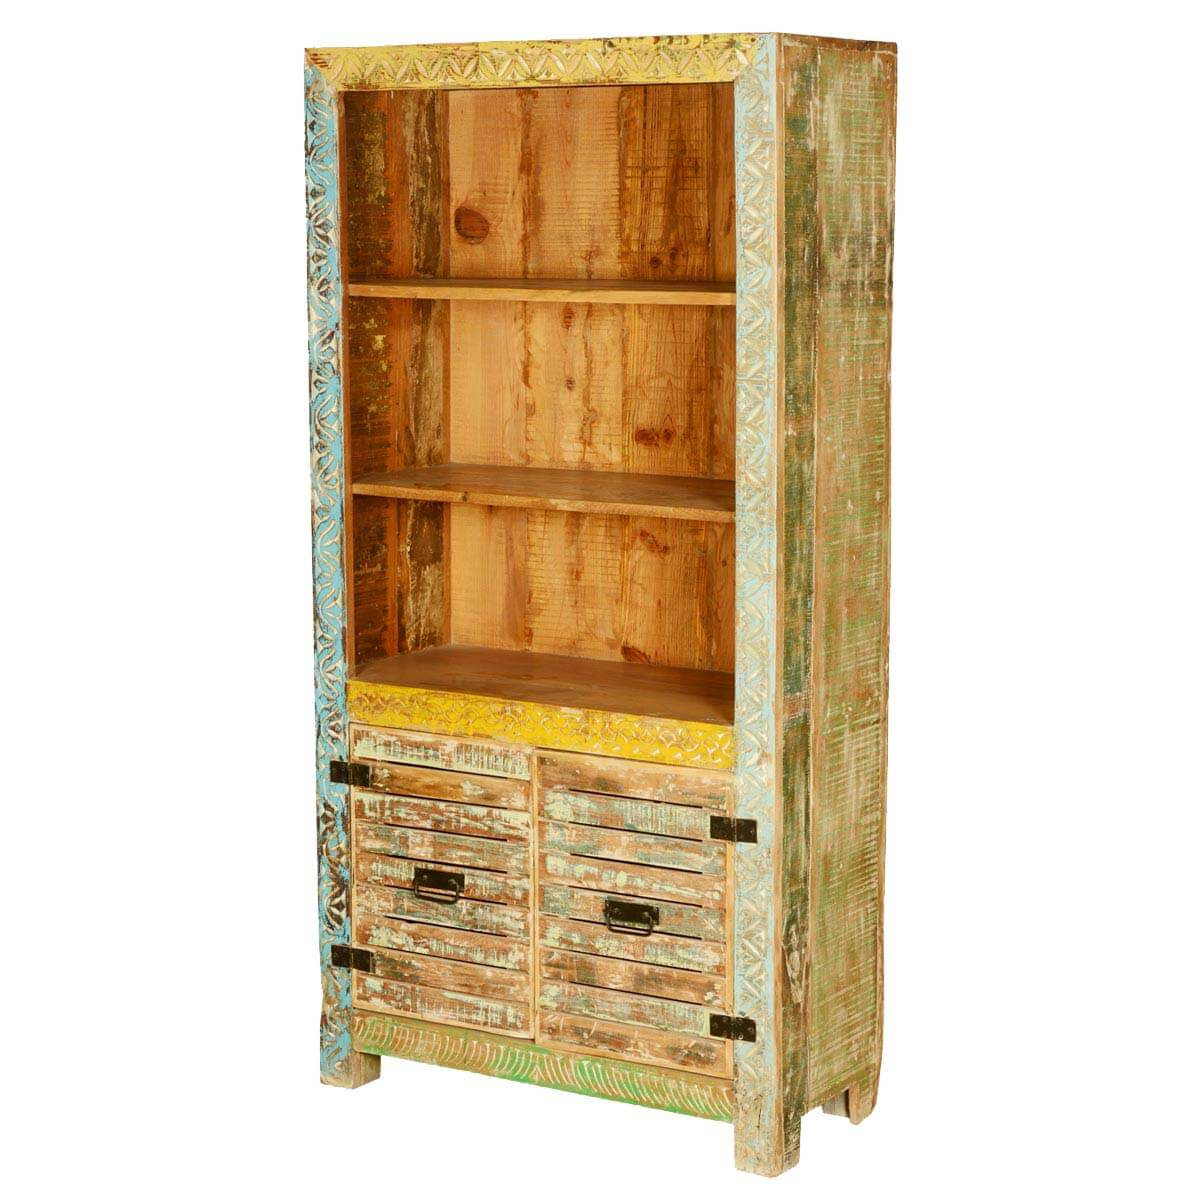 Saltillo 3 Open Shelf Rustic Reclaimed Wood Bookcase Hutch